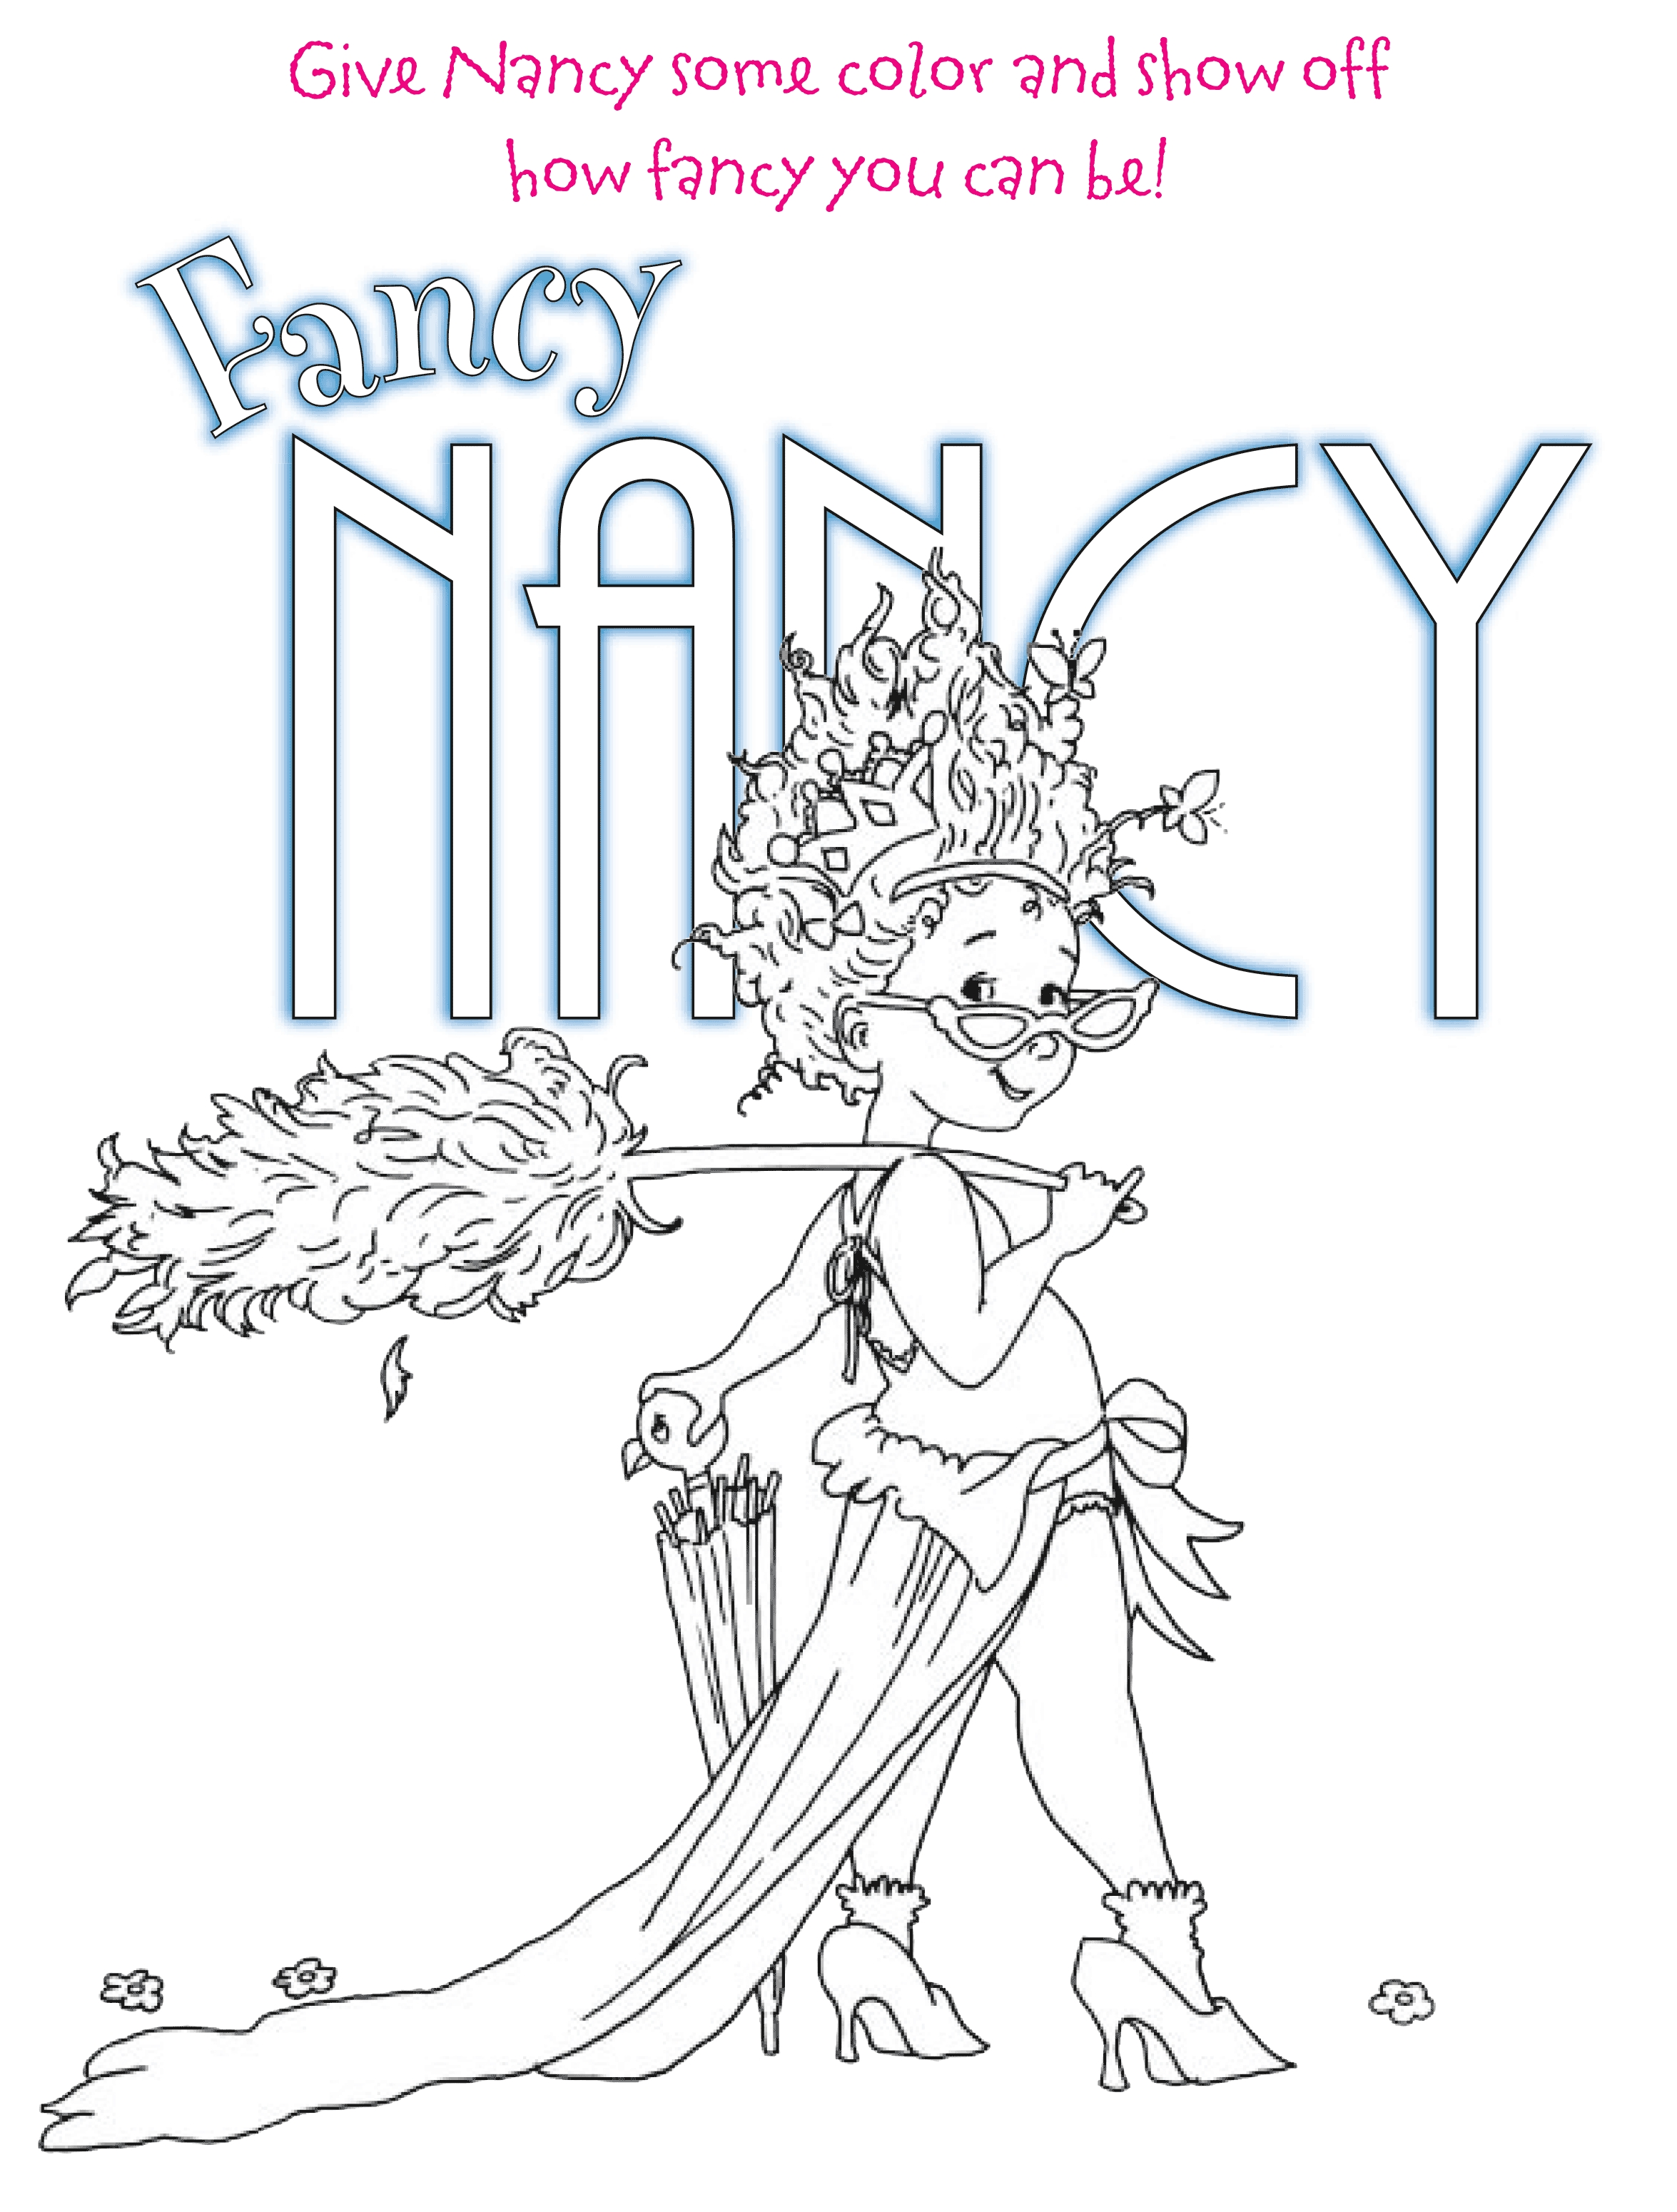 pot of gold coloring page - fancy nancy coloring pages